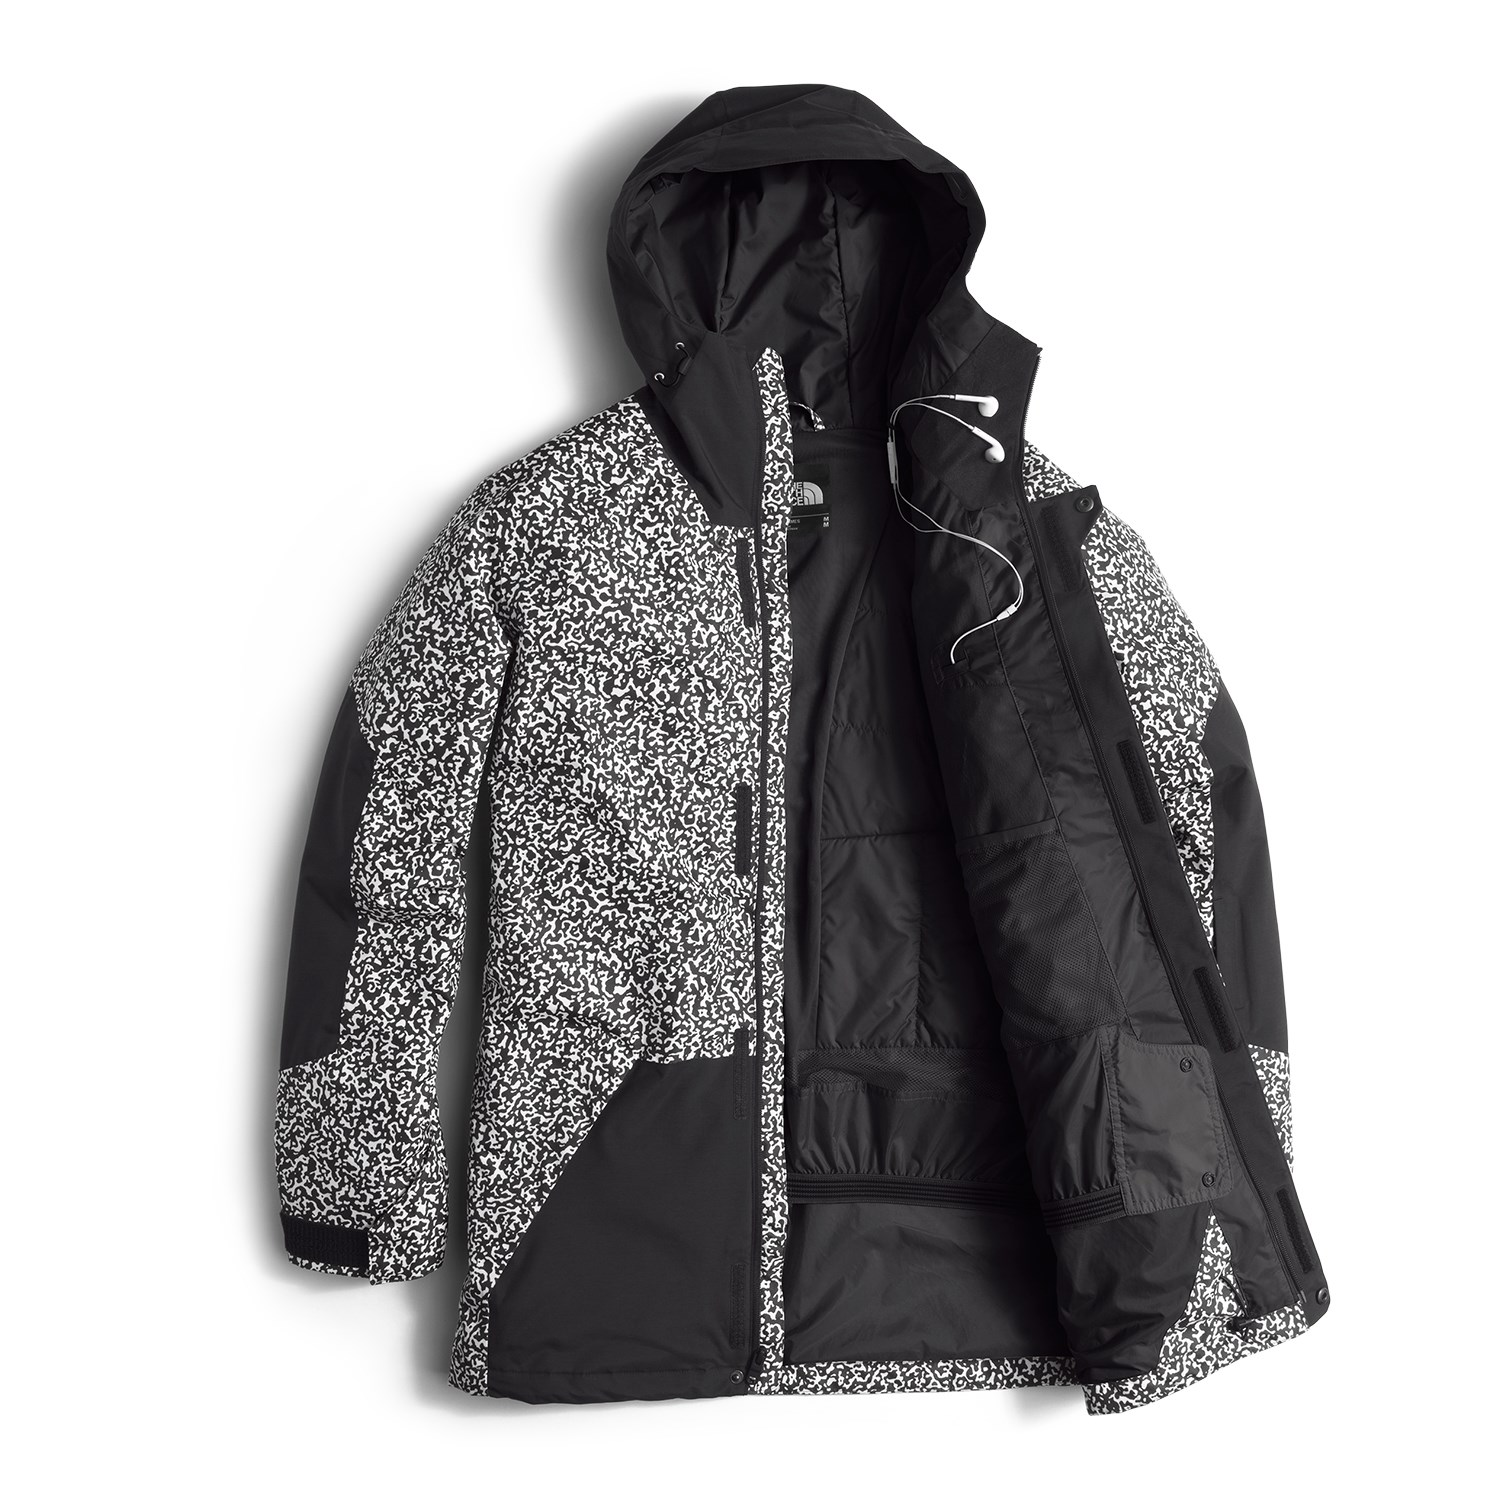 d0a3bbce1 The North Face Achilles Jacket